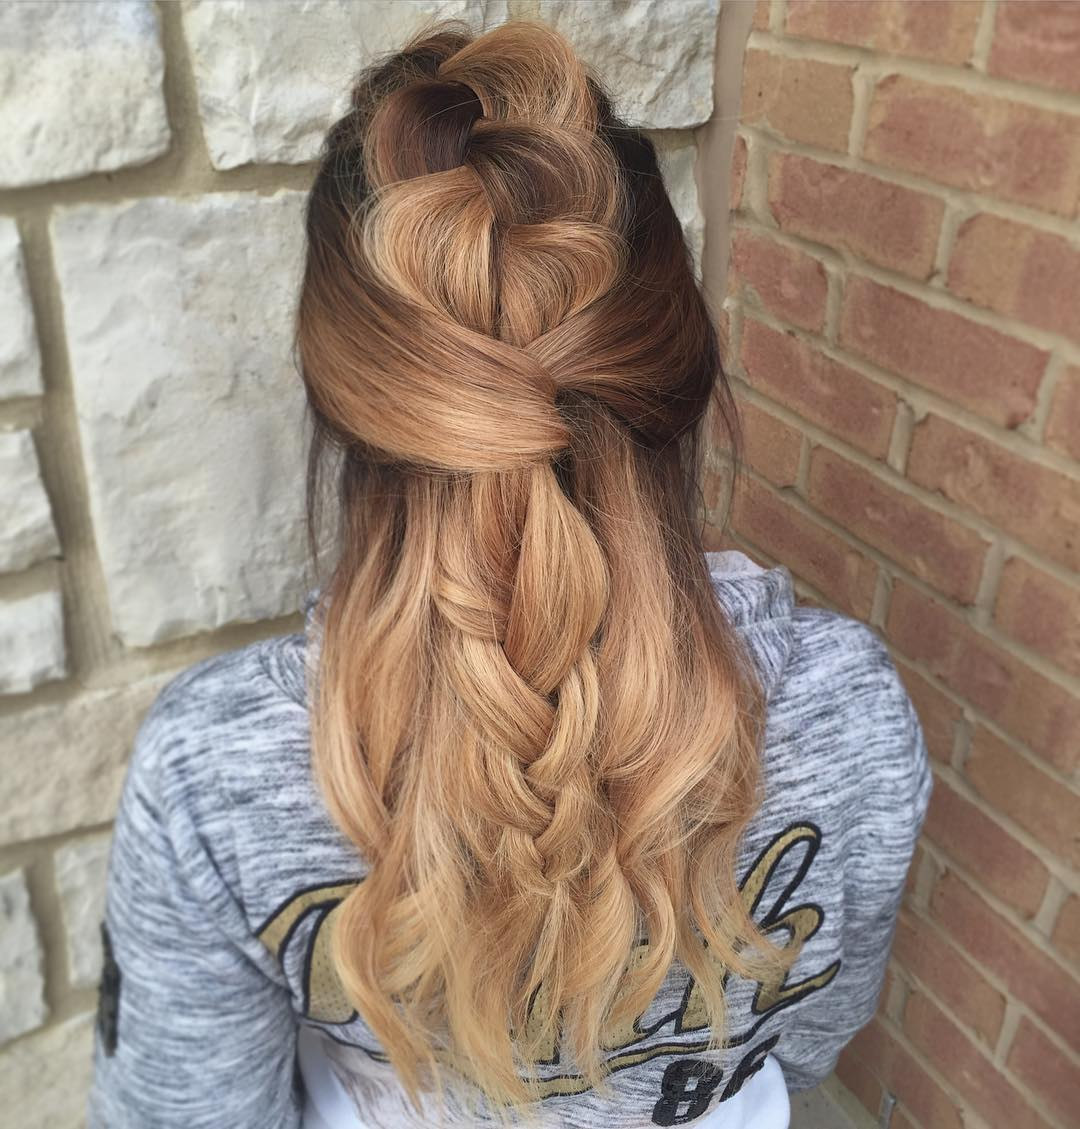 Long Half Updo With A Big Loose Braid